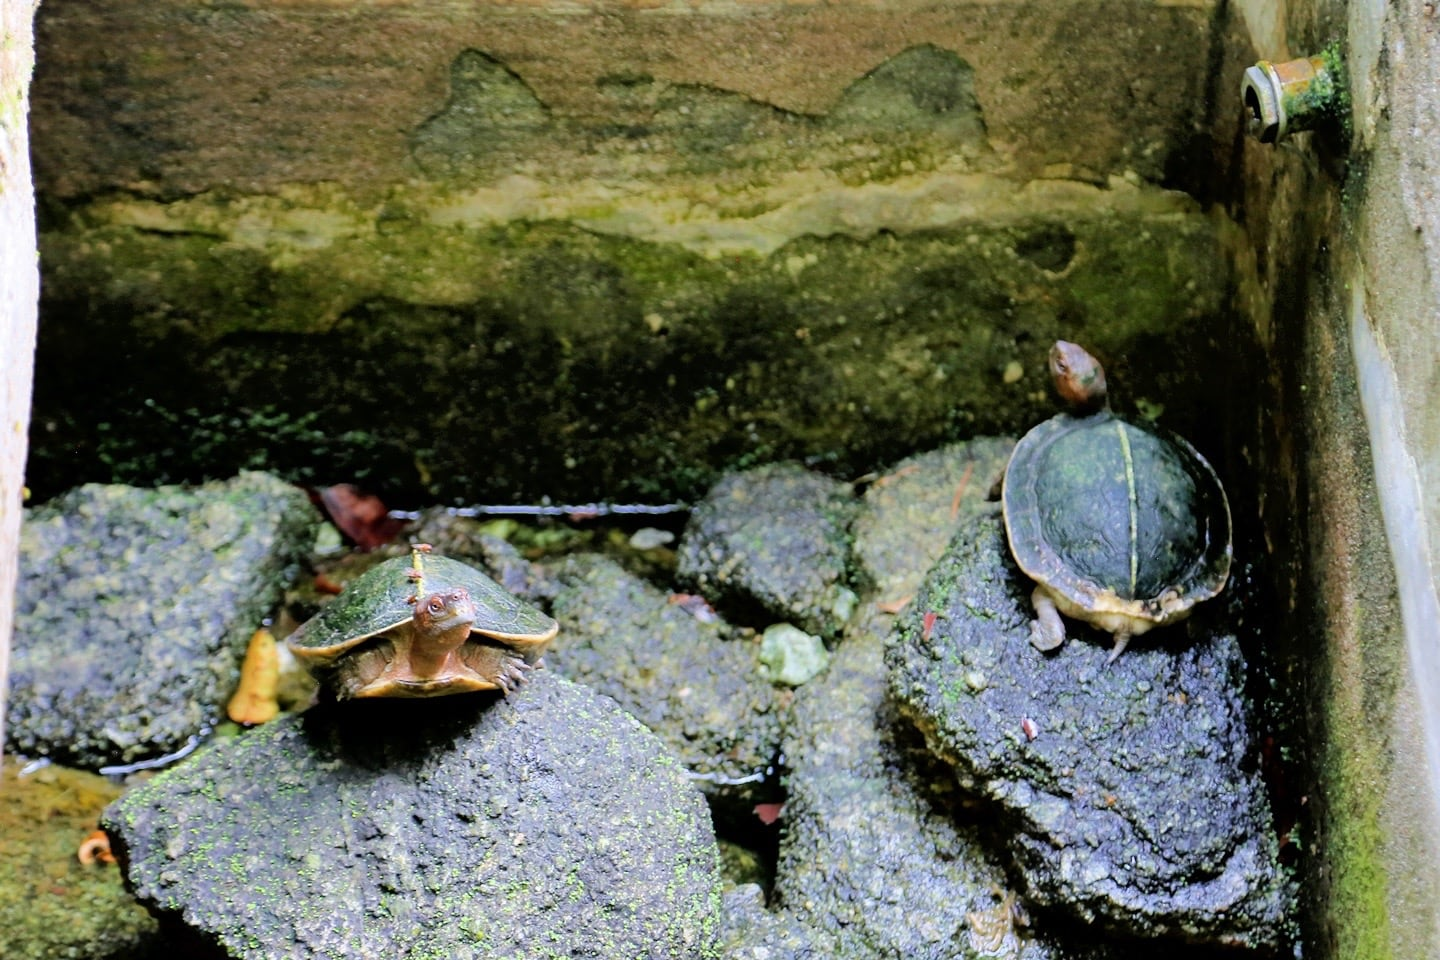 turtles at spice garden